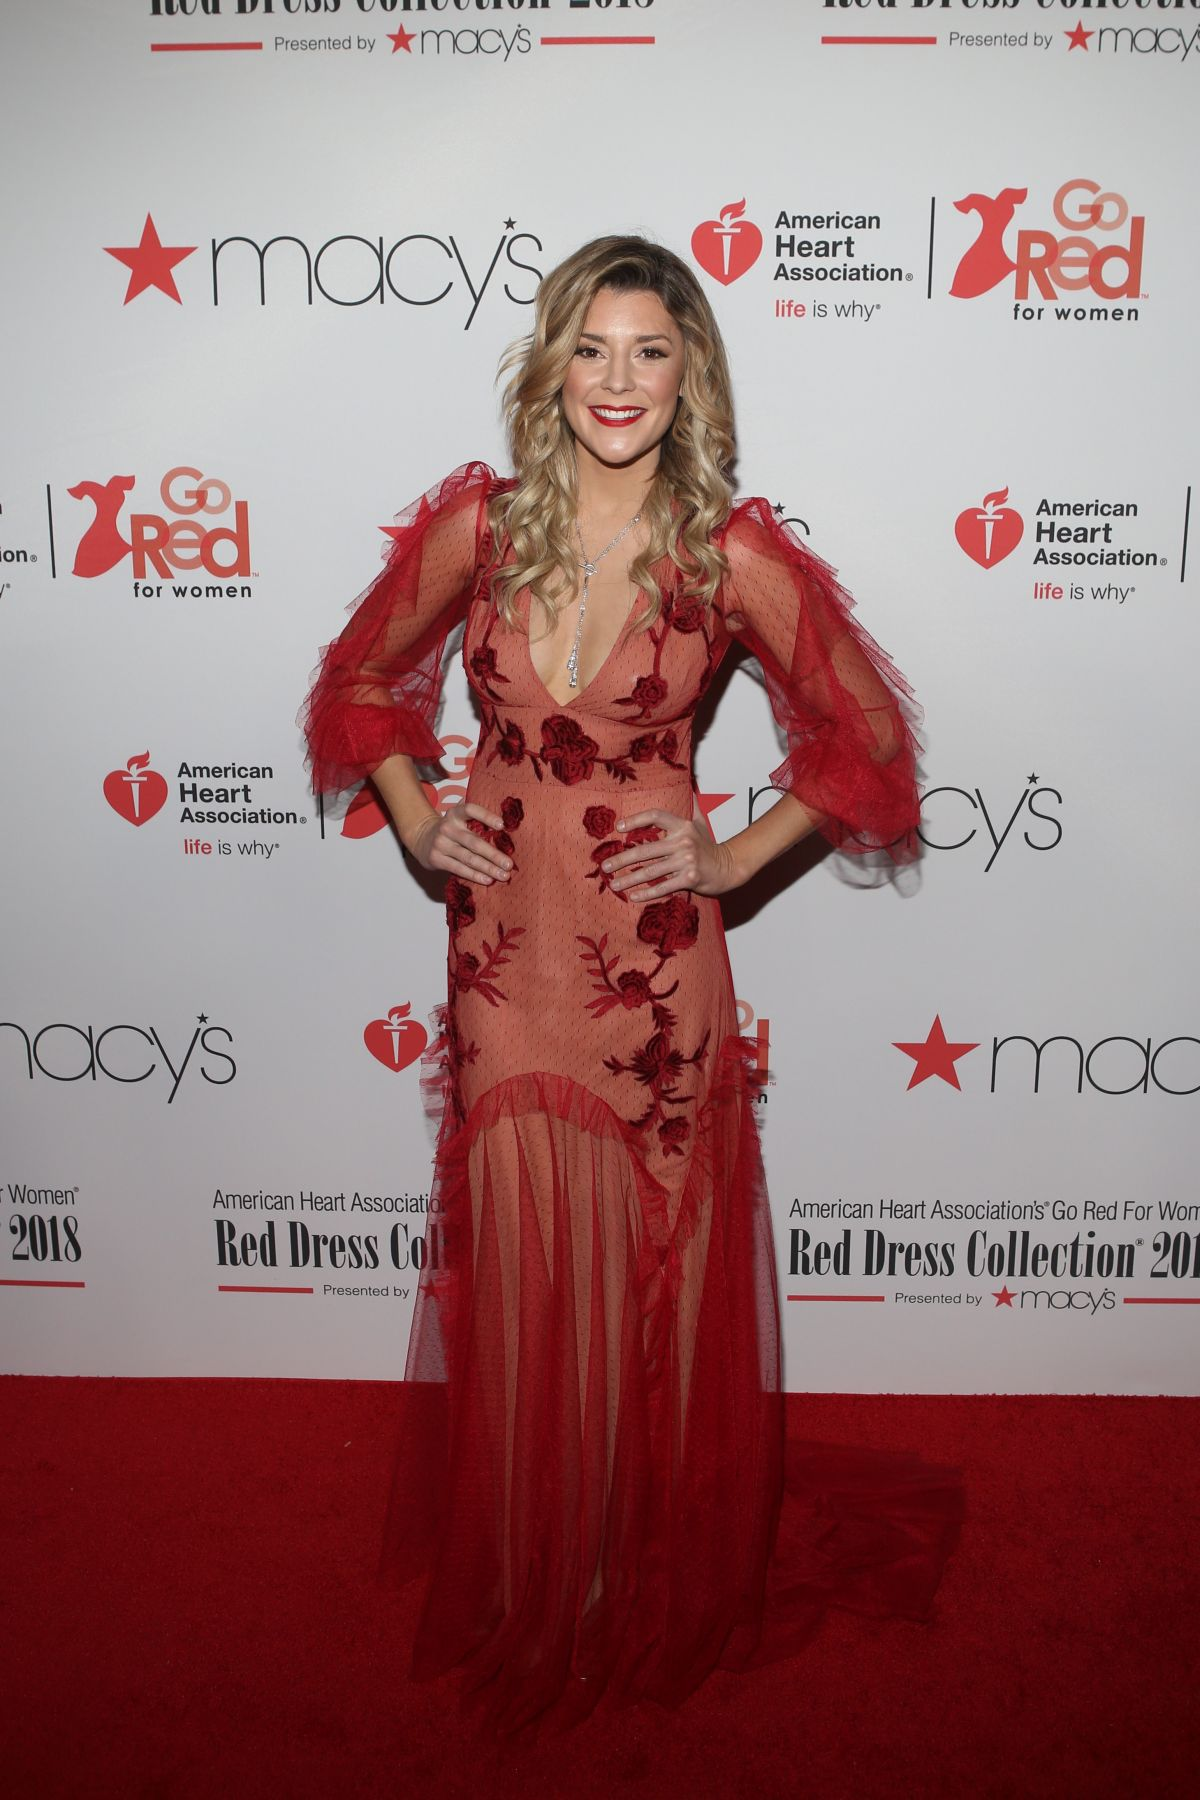 GRACE HELBIG at Go Red for Women Red Dress Collection 2018 ... Red Dresses For Women 2018